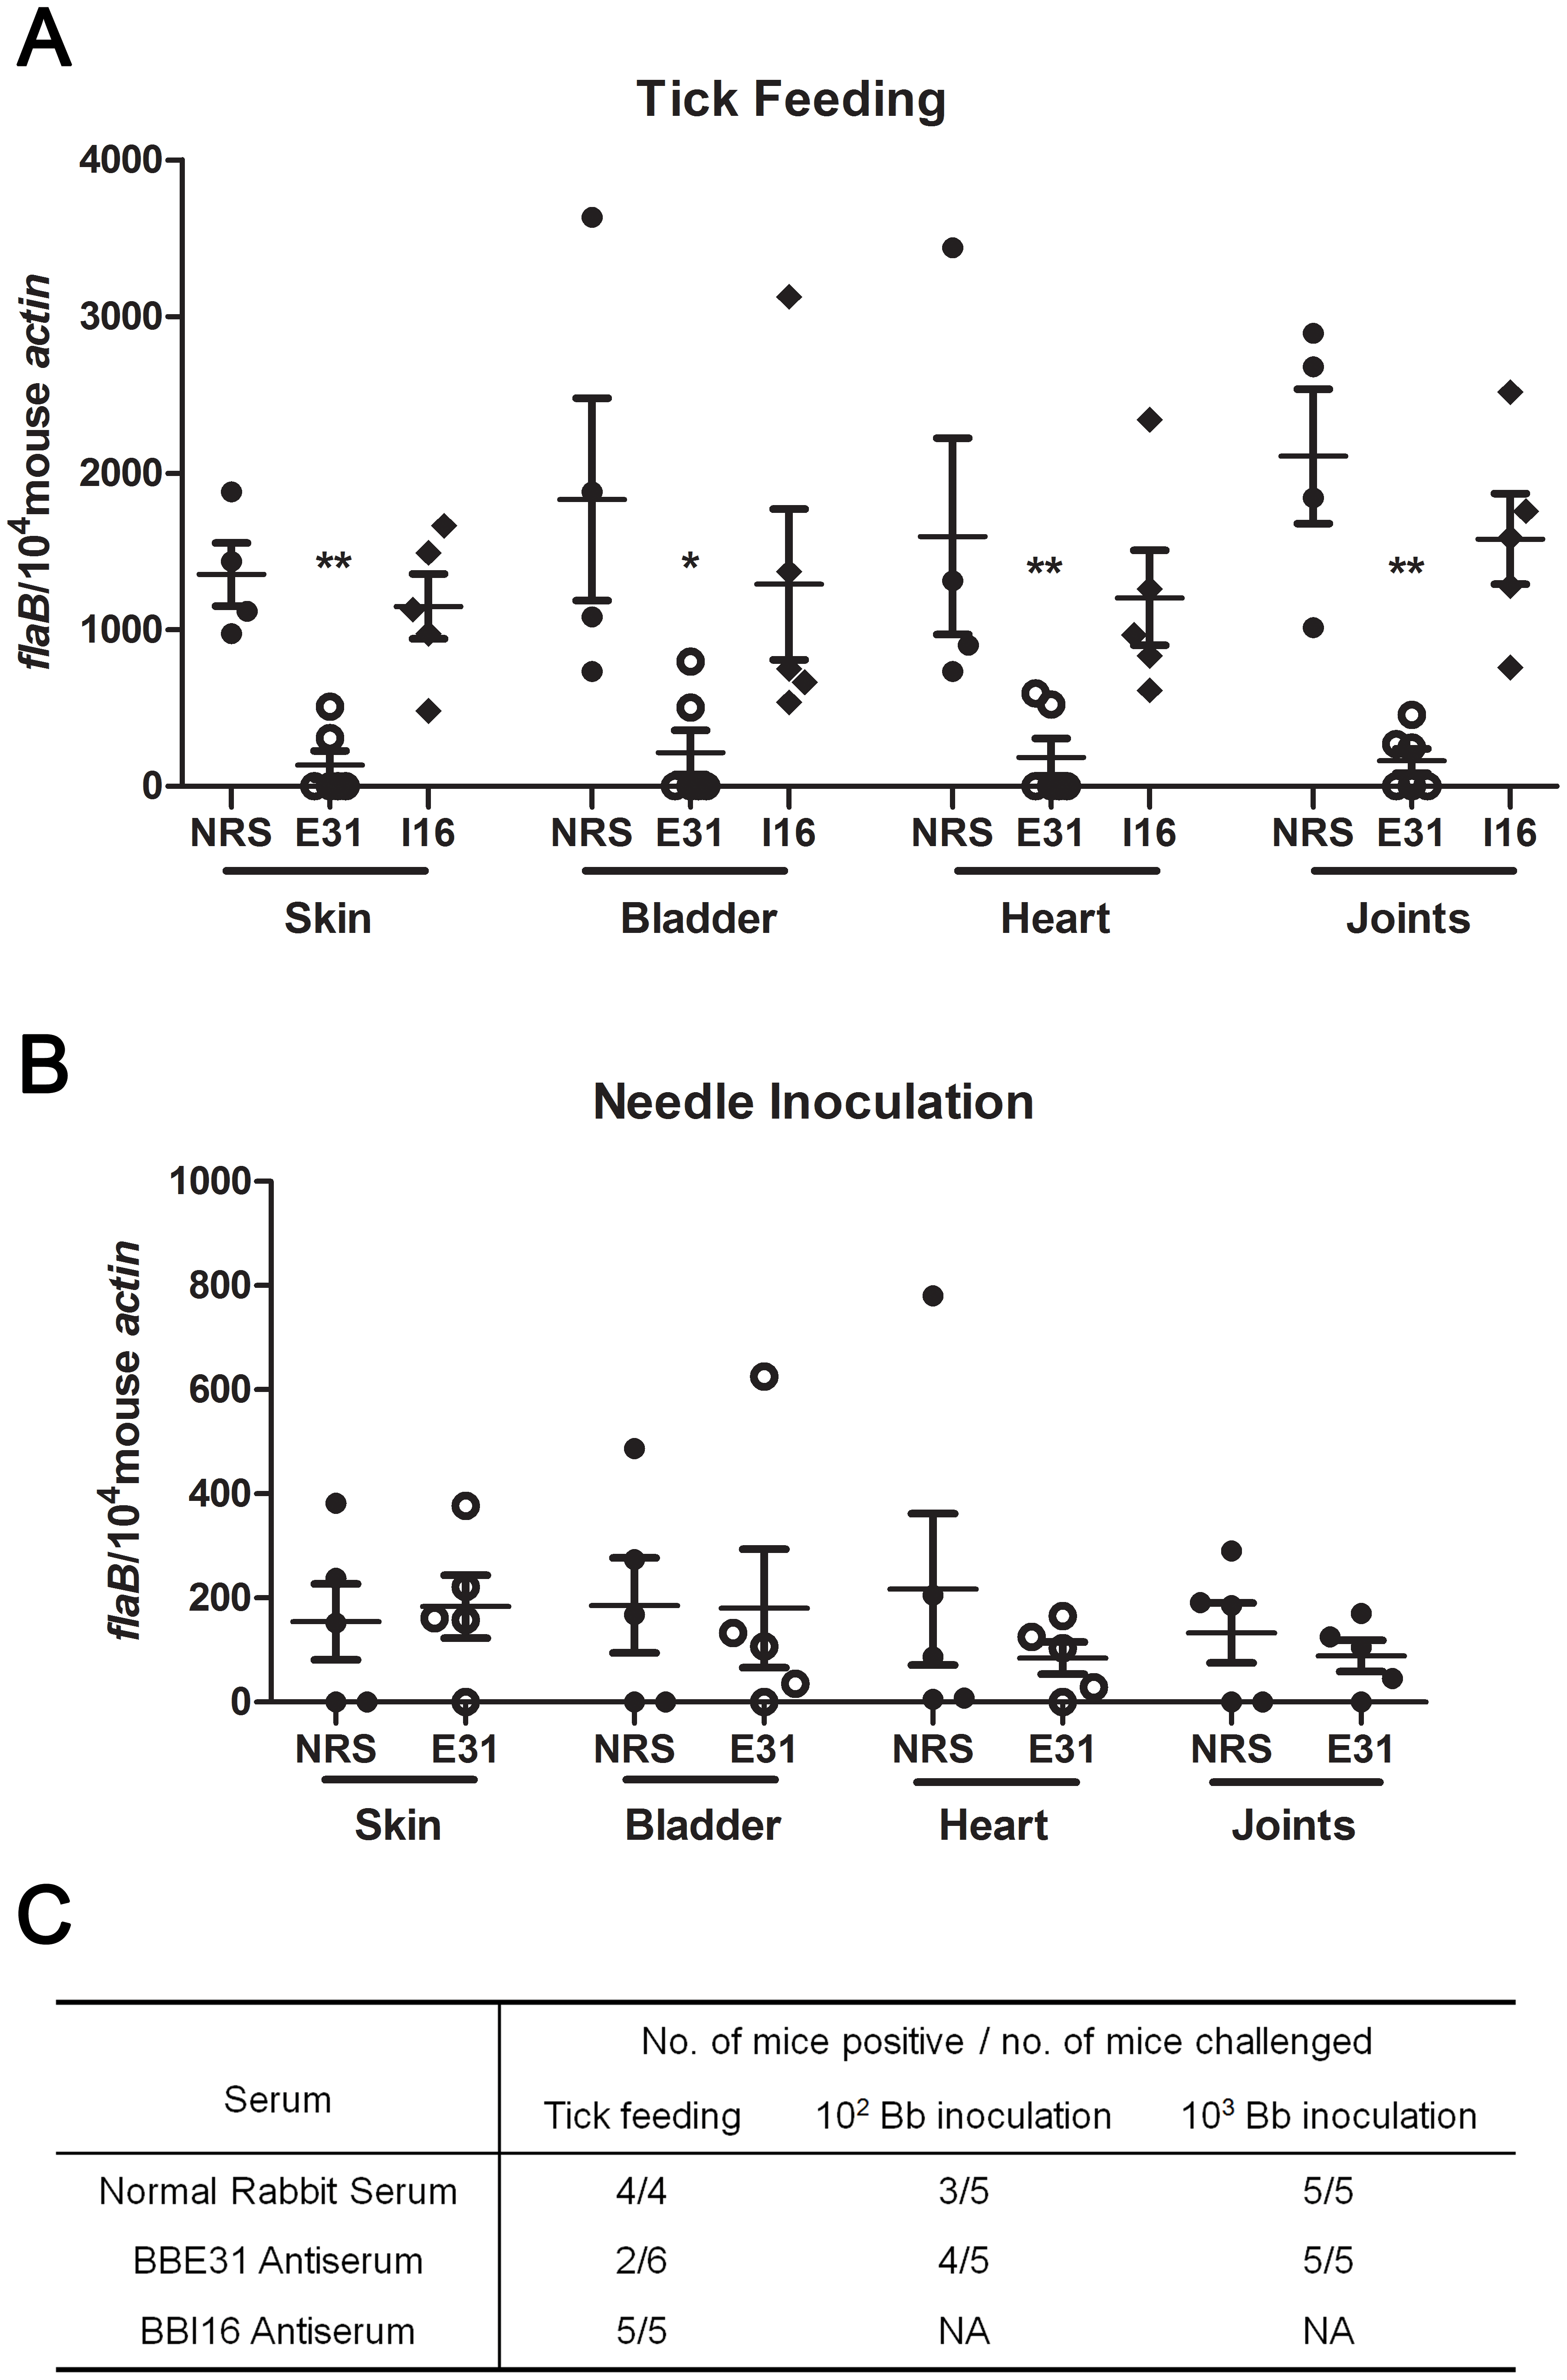 Influence of BBE31 antibodies on <i>B.burgdorferi</i> infectivity in mice.